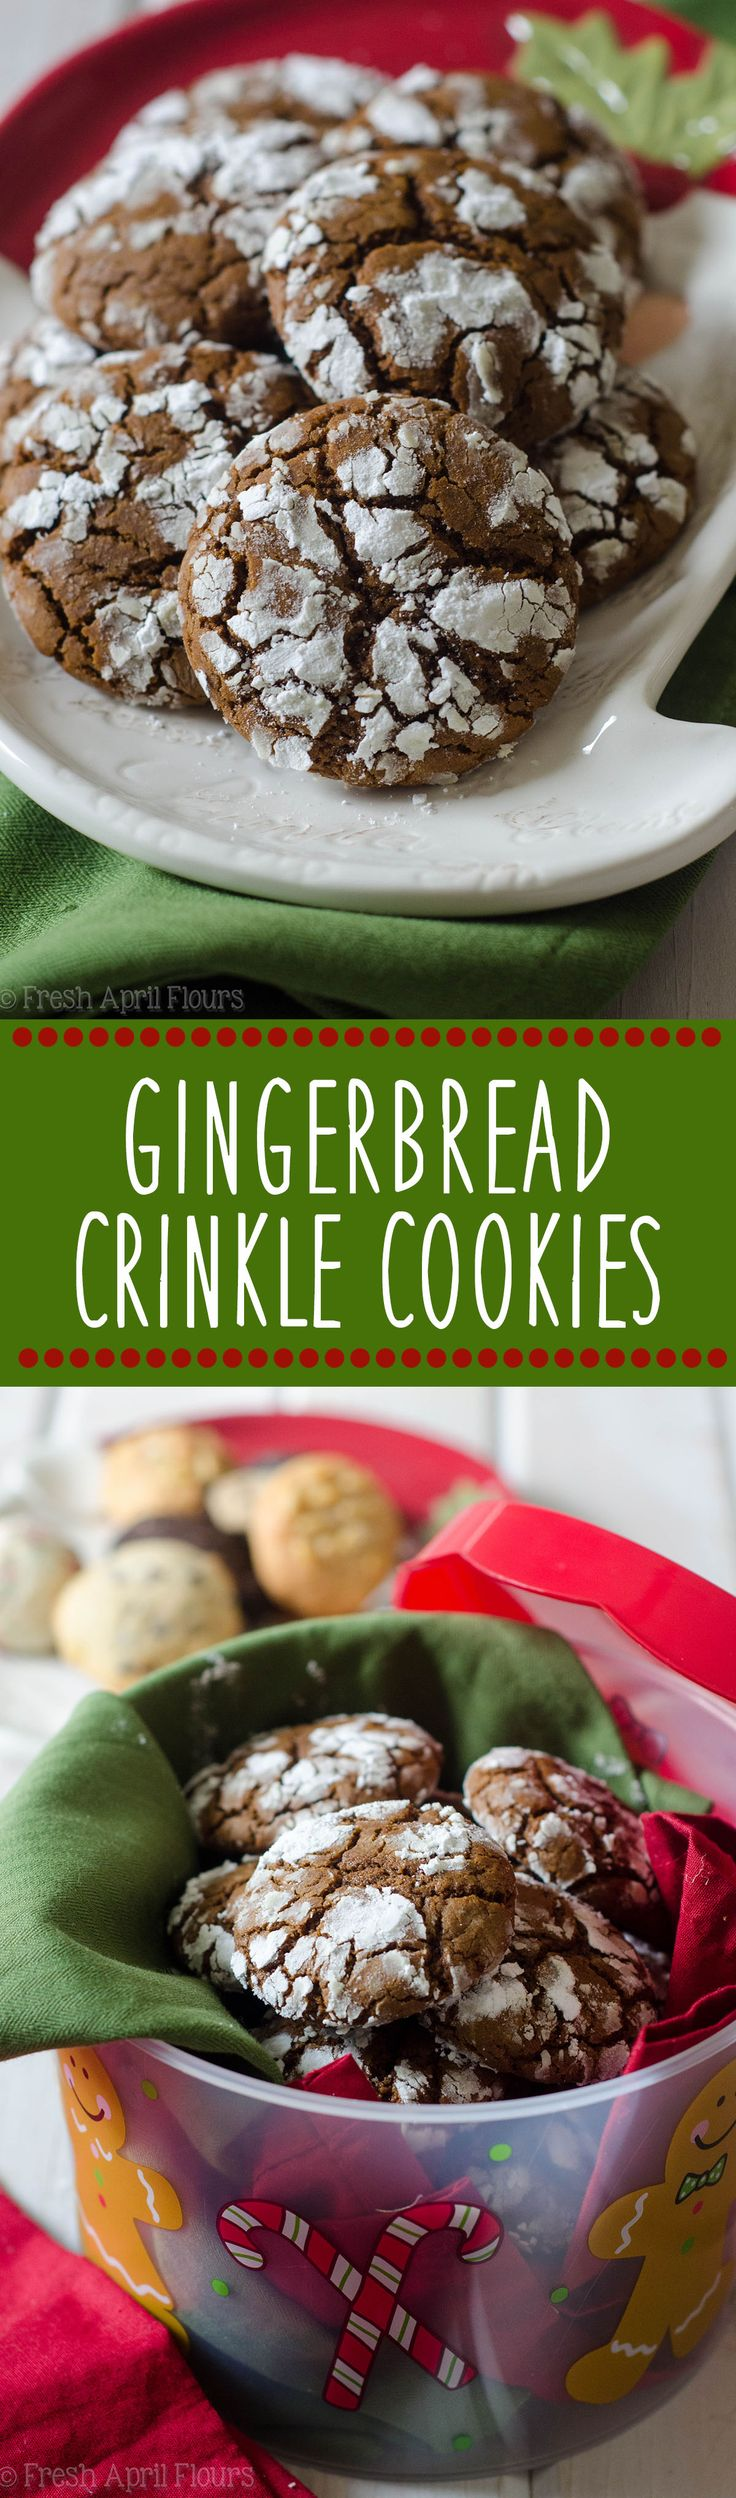 Gingerbread Crinkle Cookies: A crunchy, spicy cookie covered in sweet powdered sugar, perfect for dunking in a glass of eggnog. via @frshaprilflours